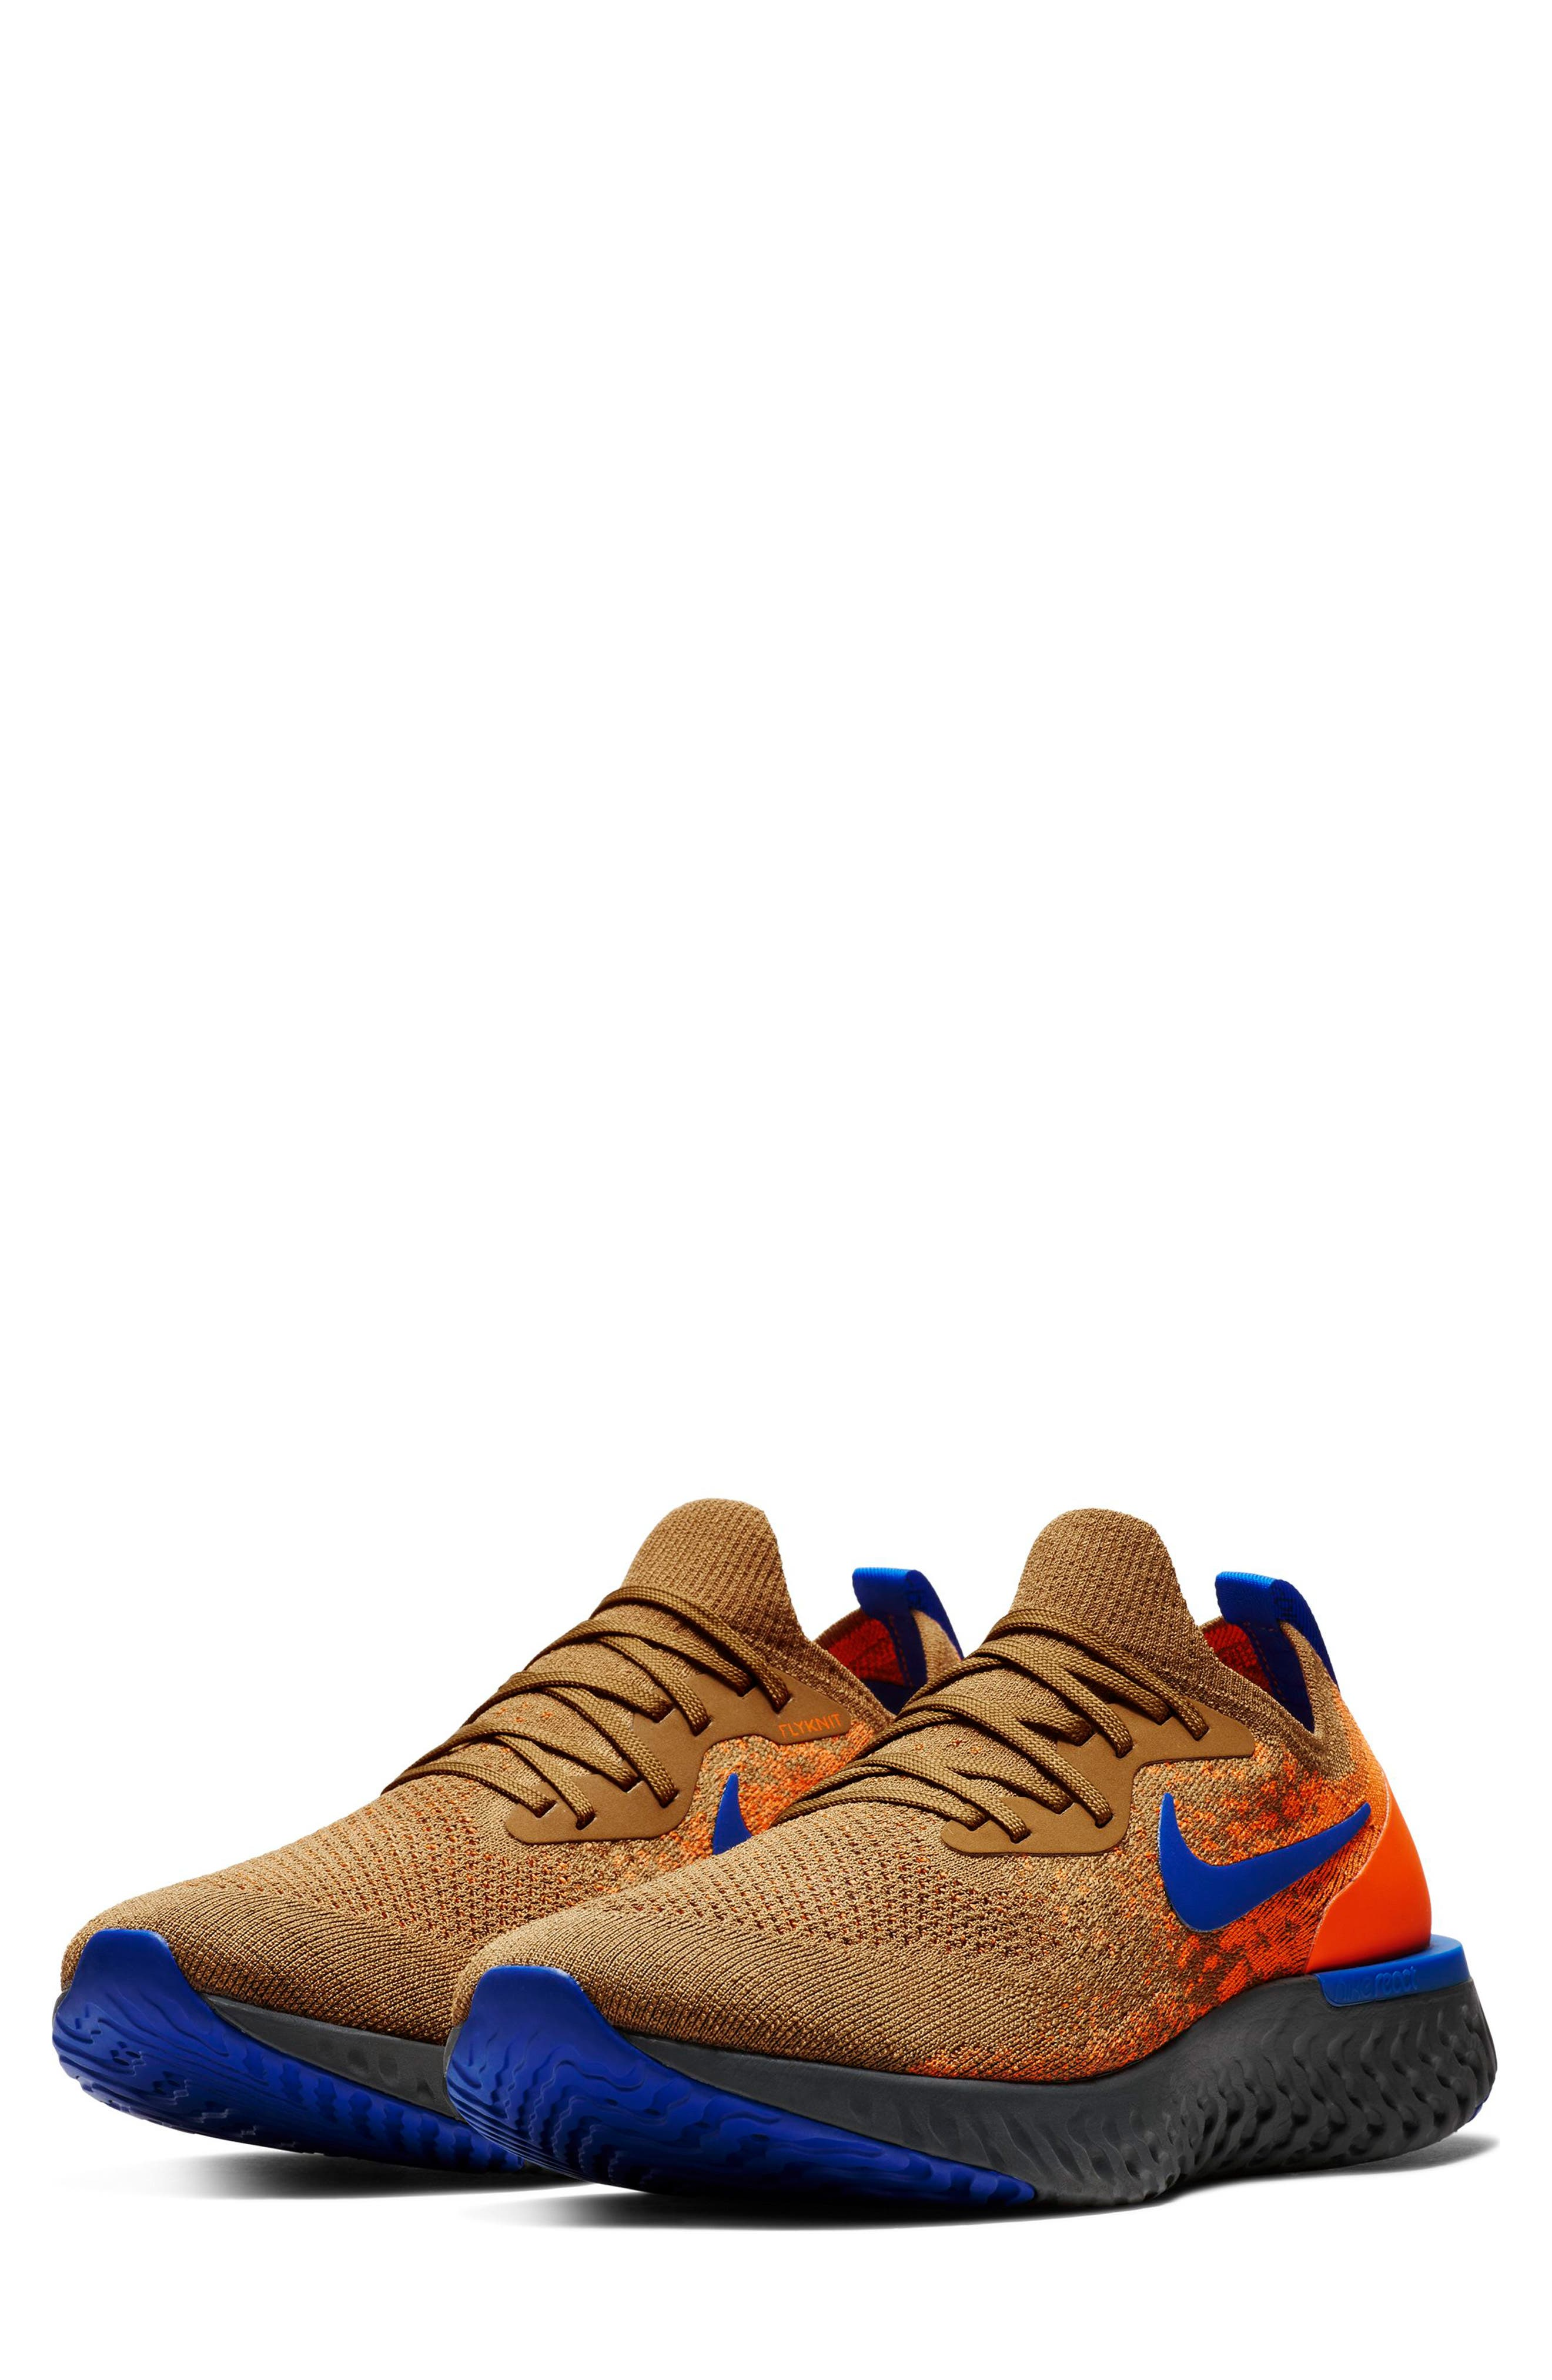 Epic React Flyknit Running Shoe,                             Main thumbnail 1, color,                             GOLDEN BEIGE/ BLUE/ ORANGE